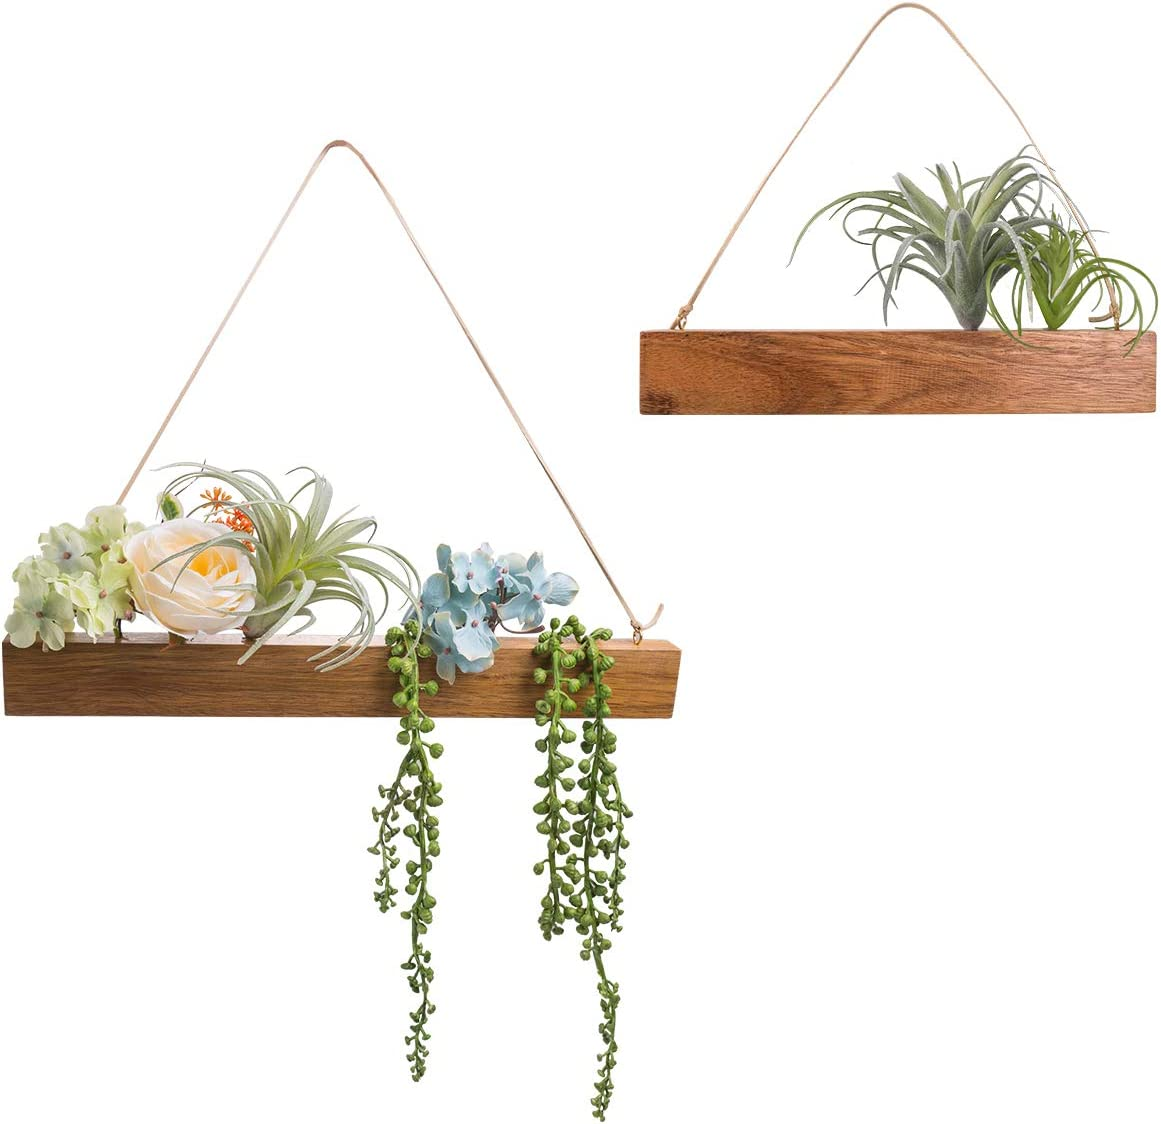 C&Z Hanging Wall Artificial Plants for Home Decor Indoor Set of 2 Succulents Plants and Flowers Floral Greenery Wall Decor Faux Plants for Living Room Nursery Backdrop